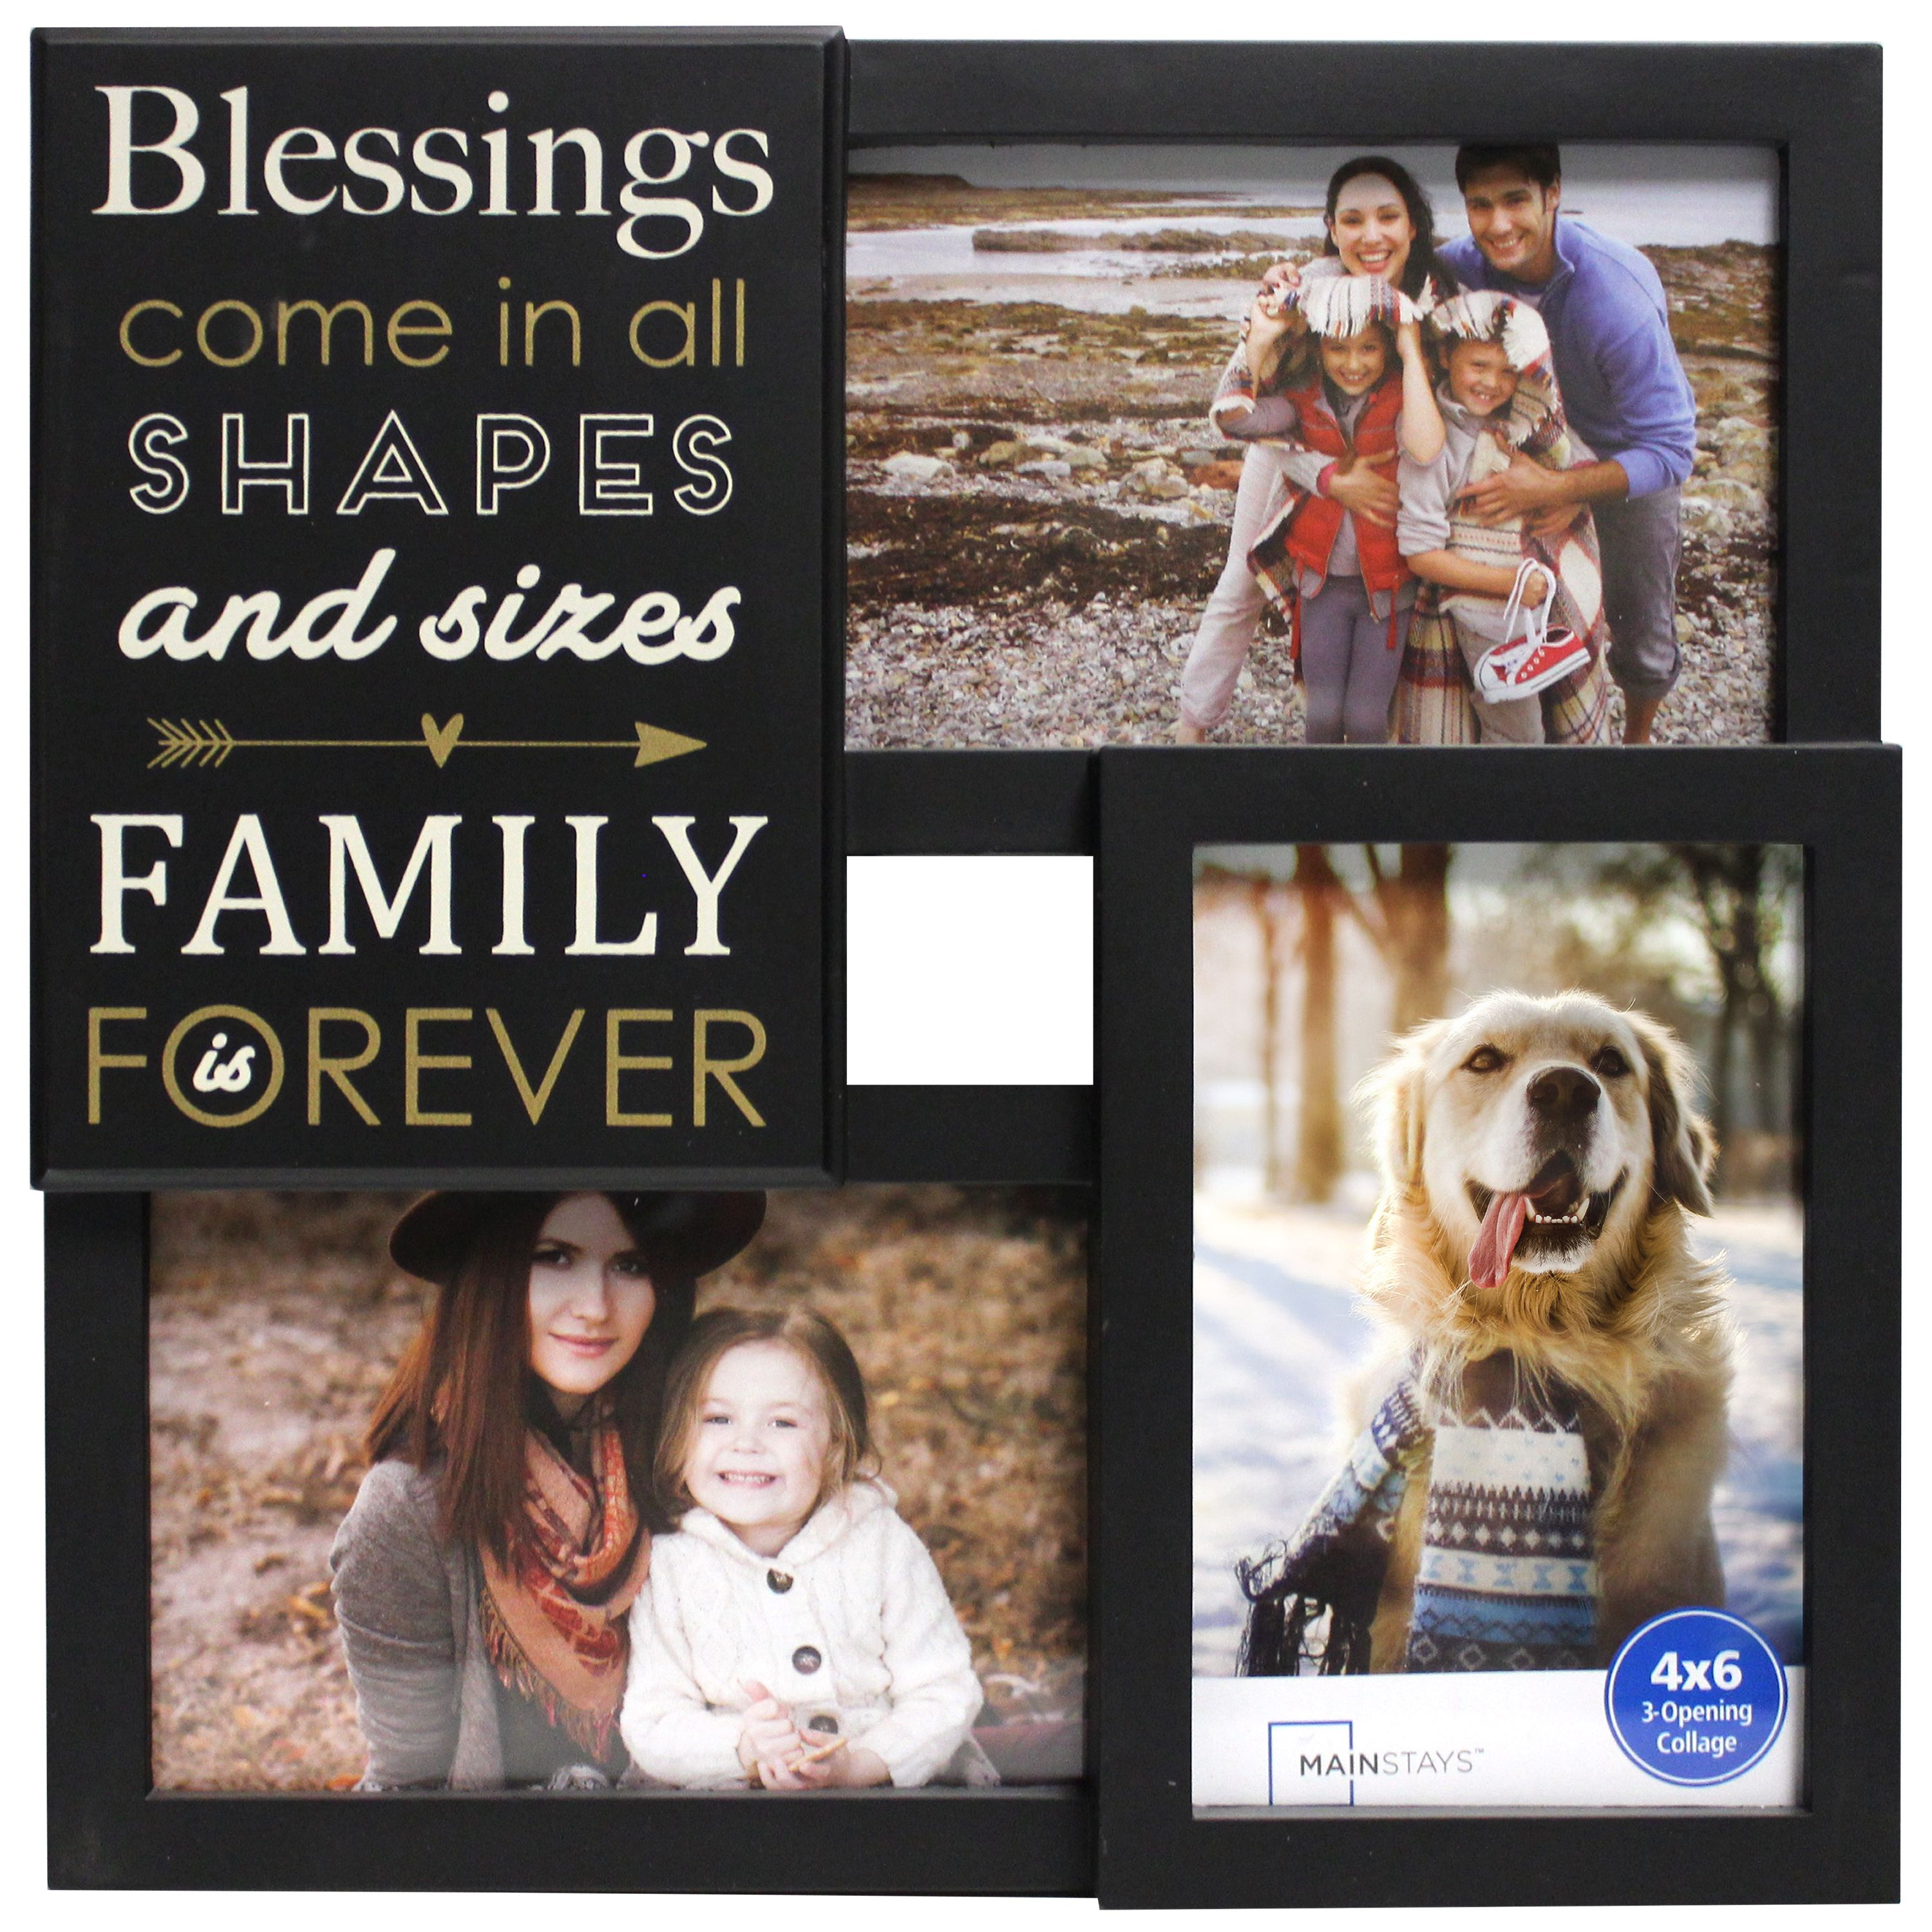 Mainstays 3-OP Sentiment Black Frame -  Blessings